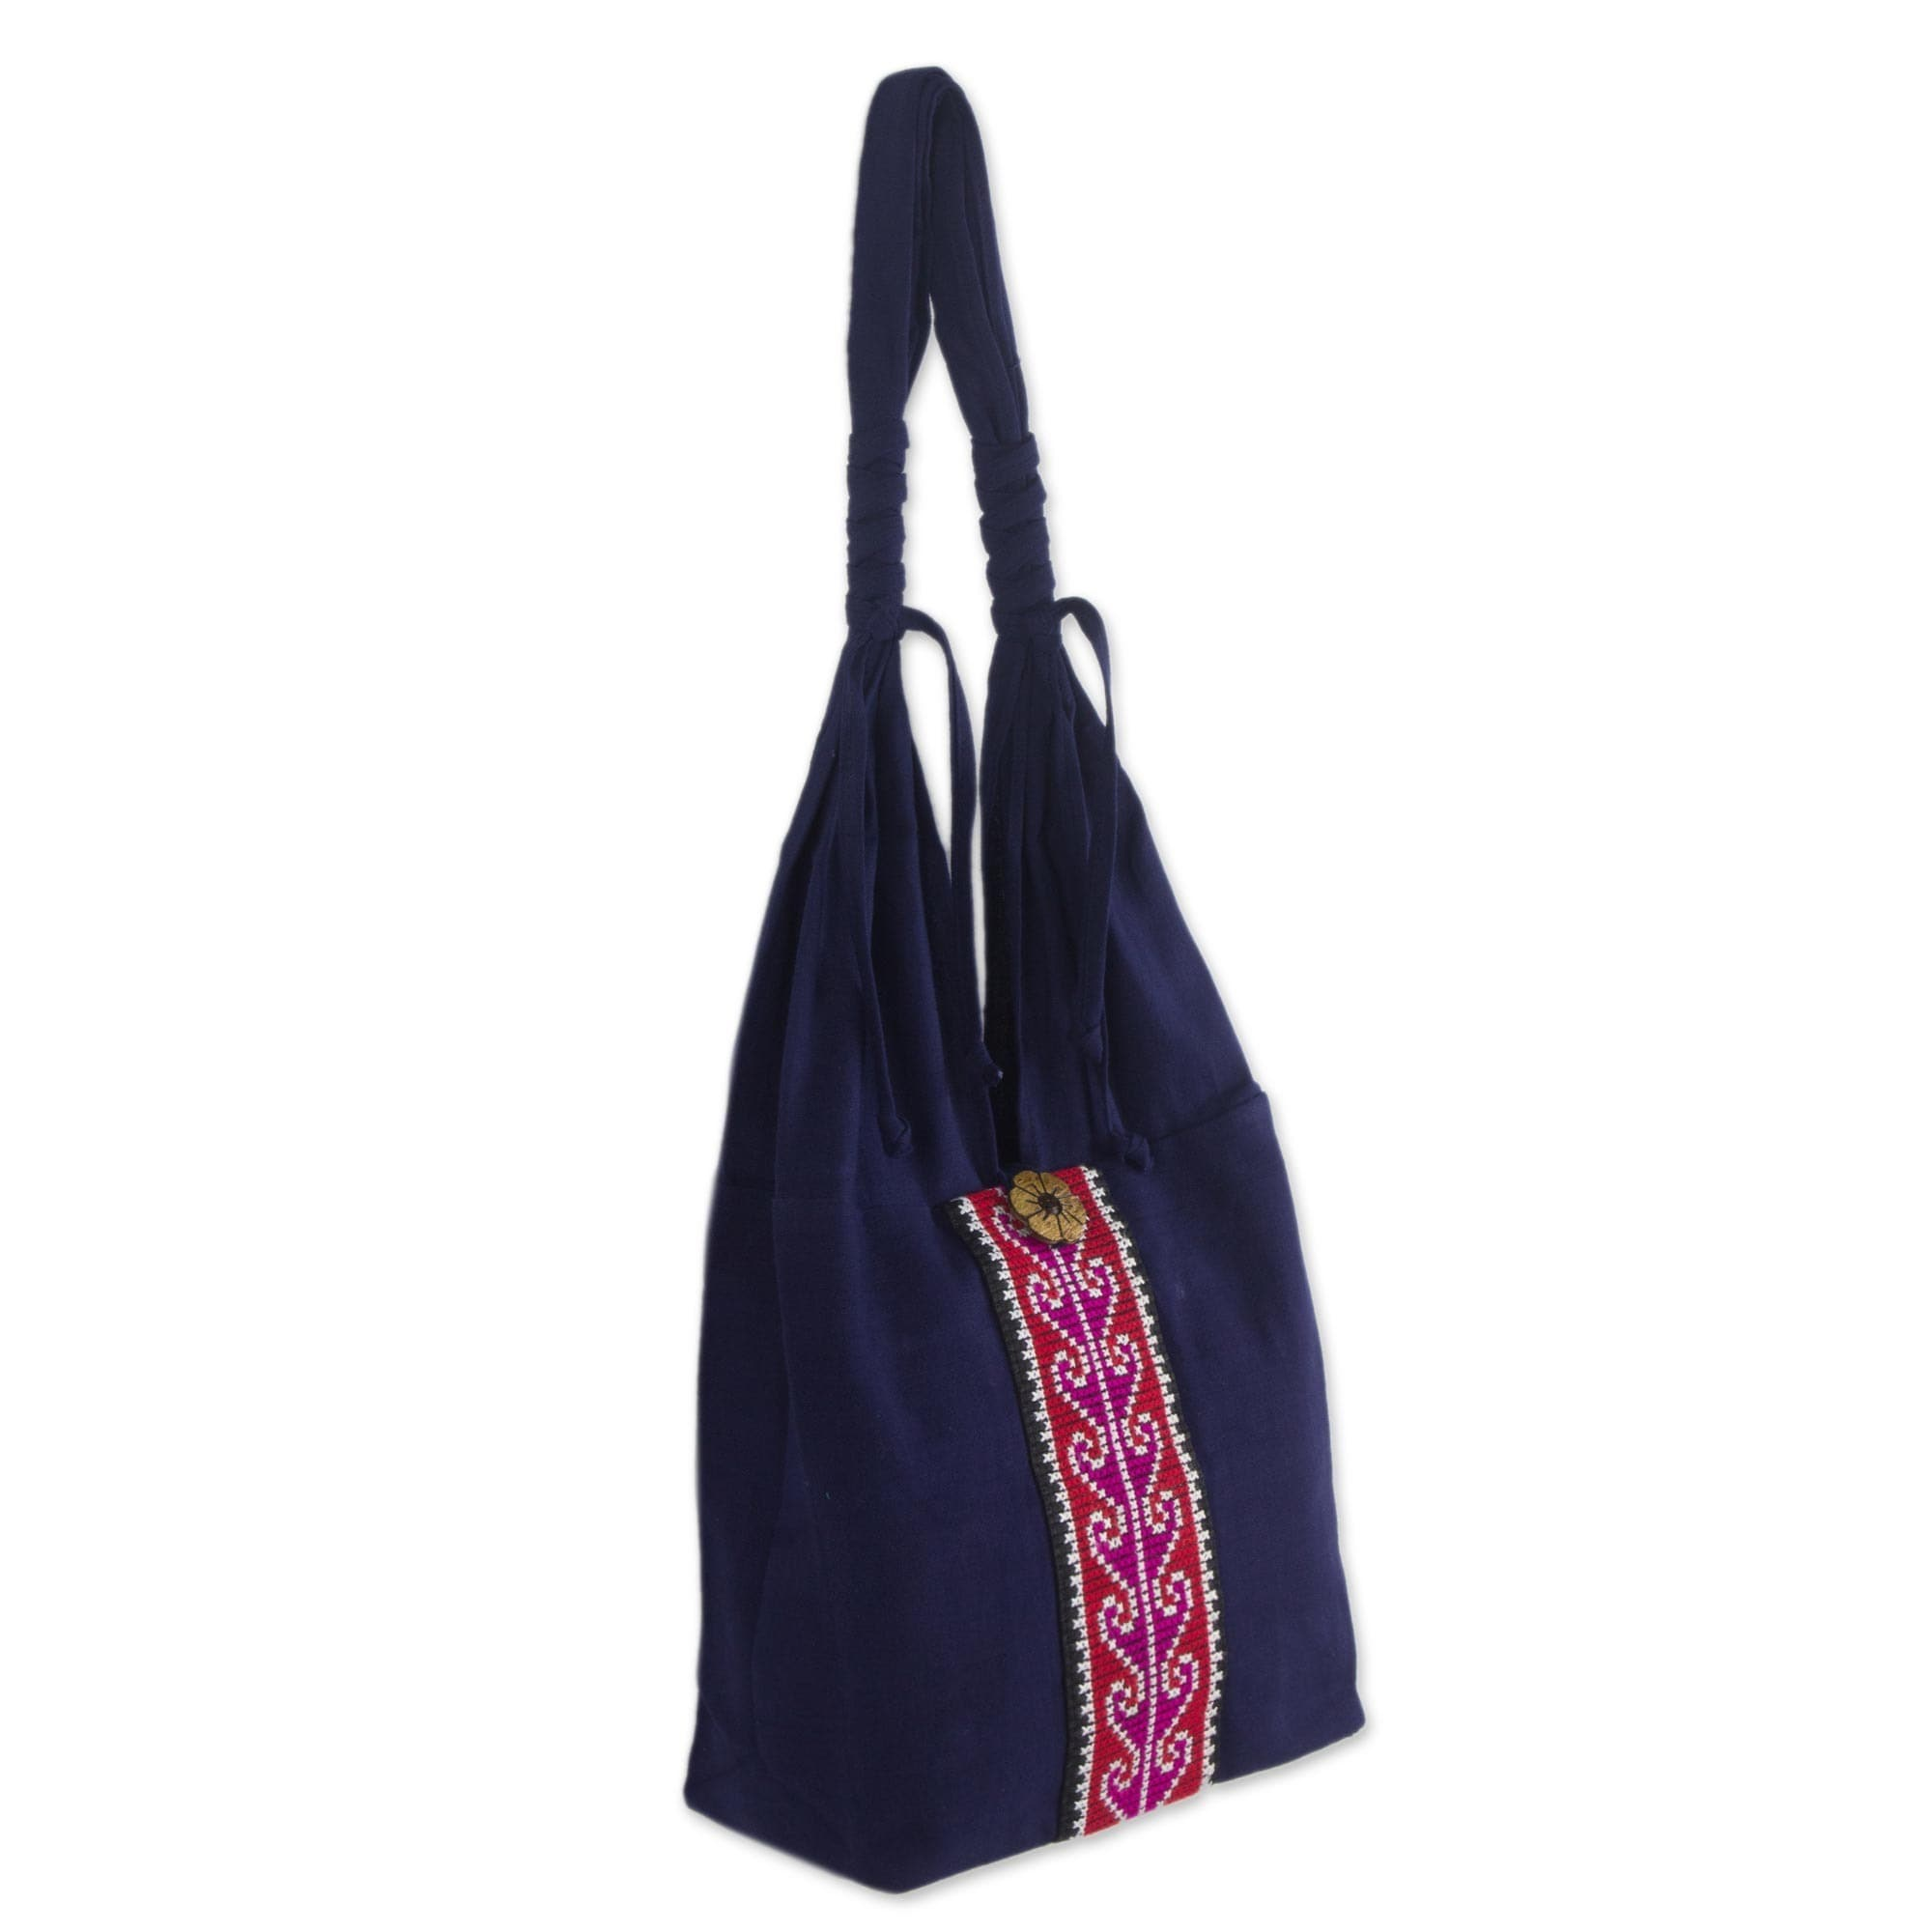 Novica Cotton handbag, Rose River